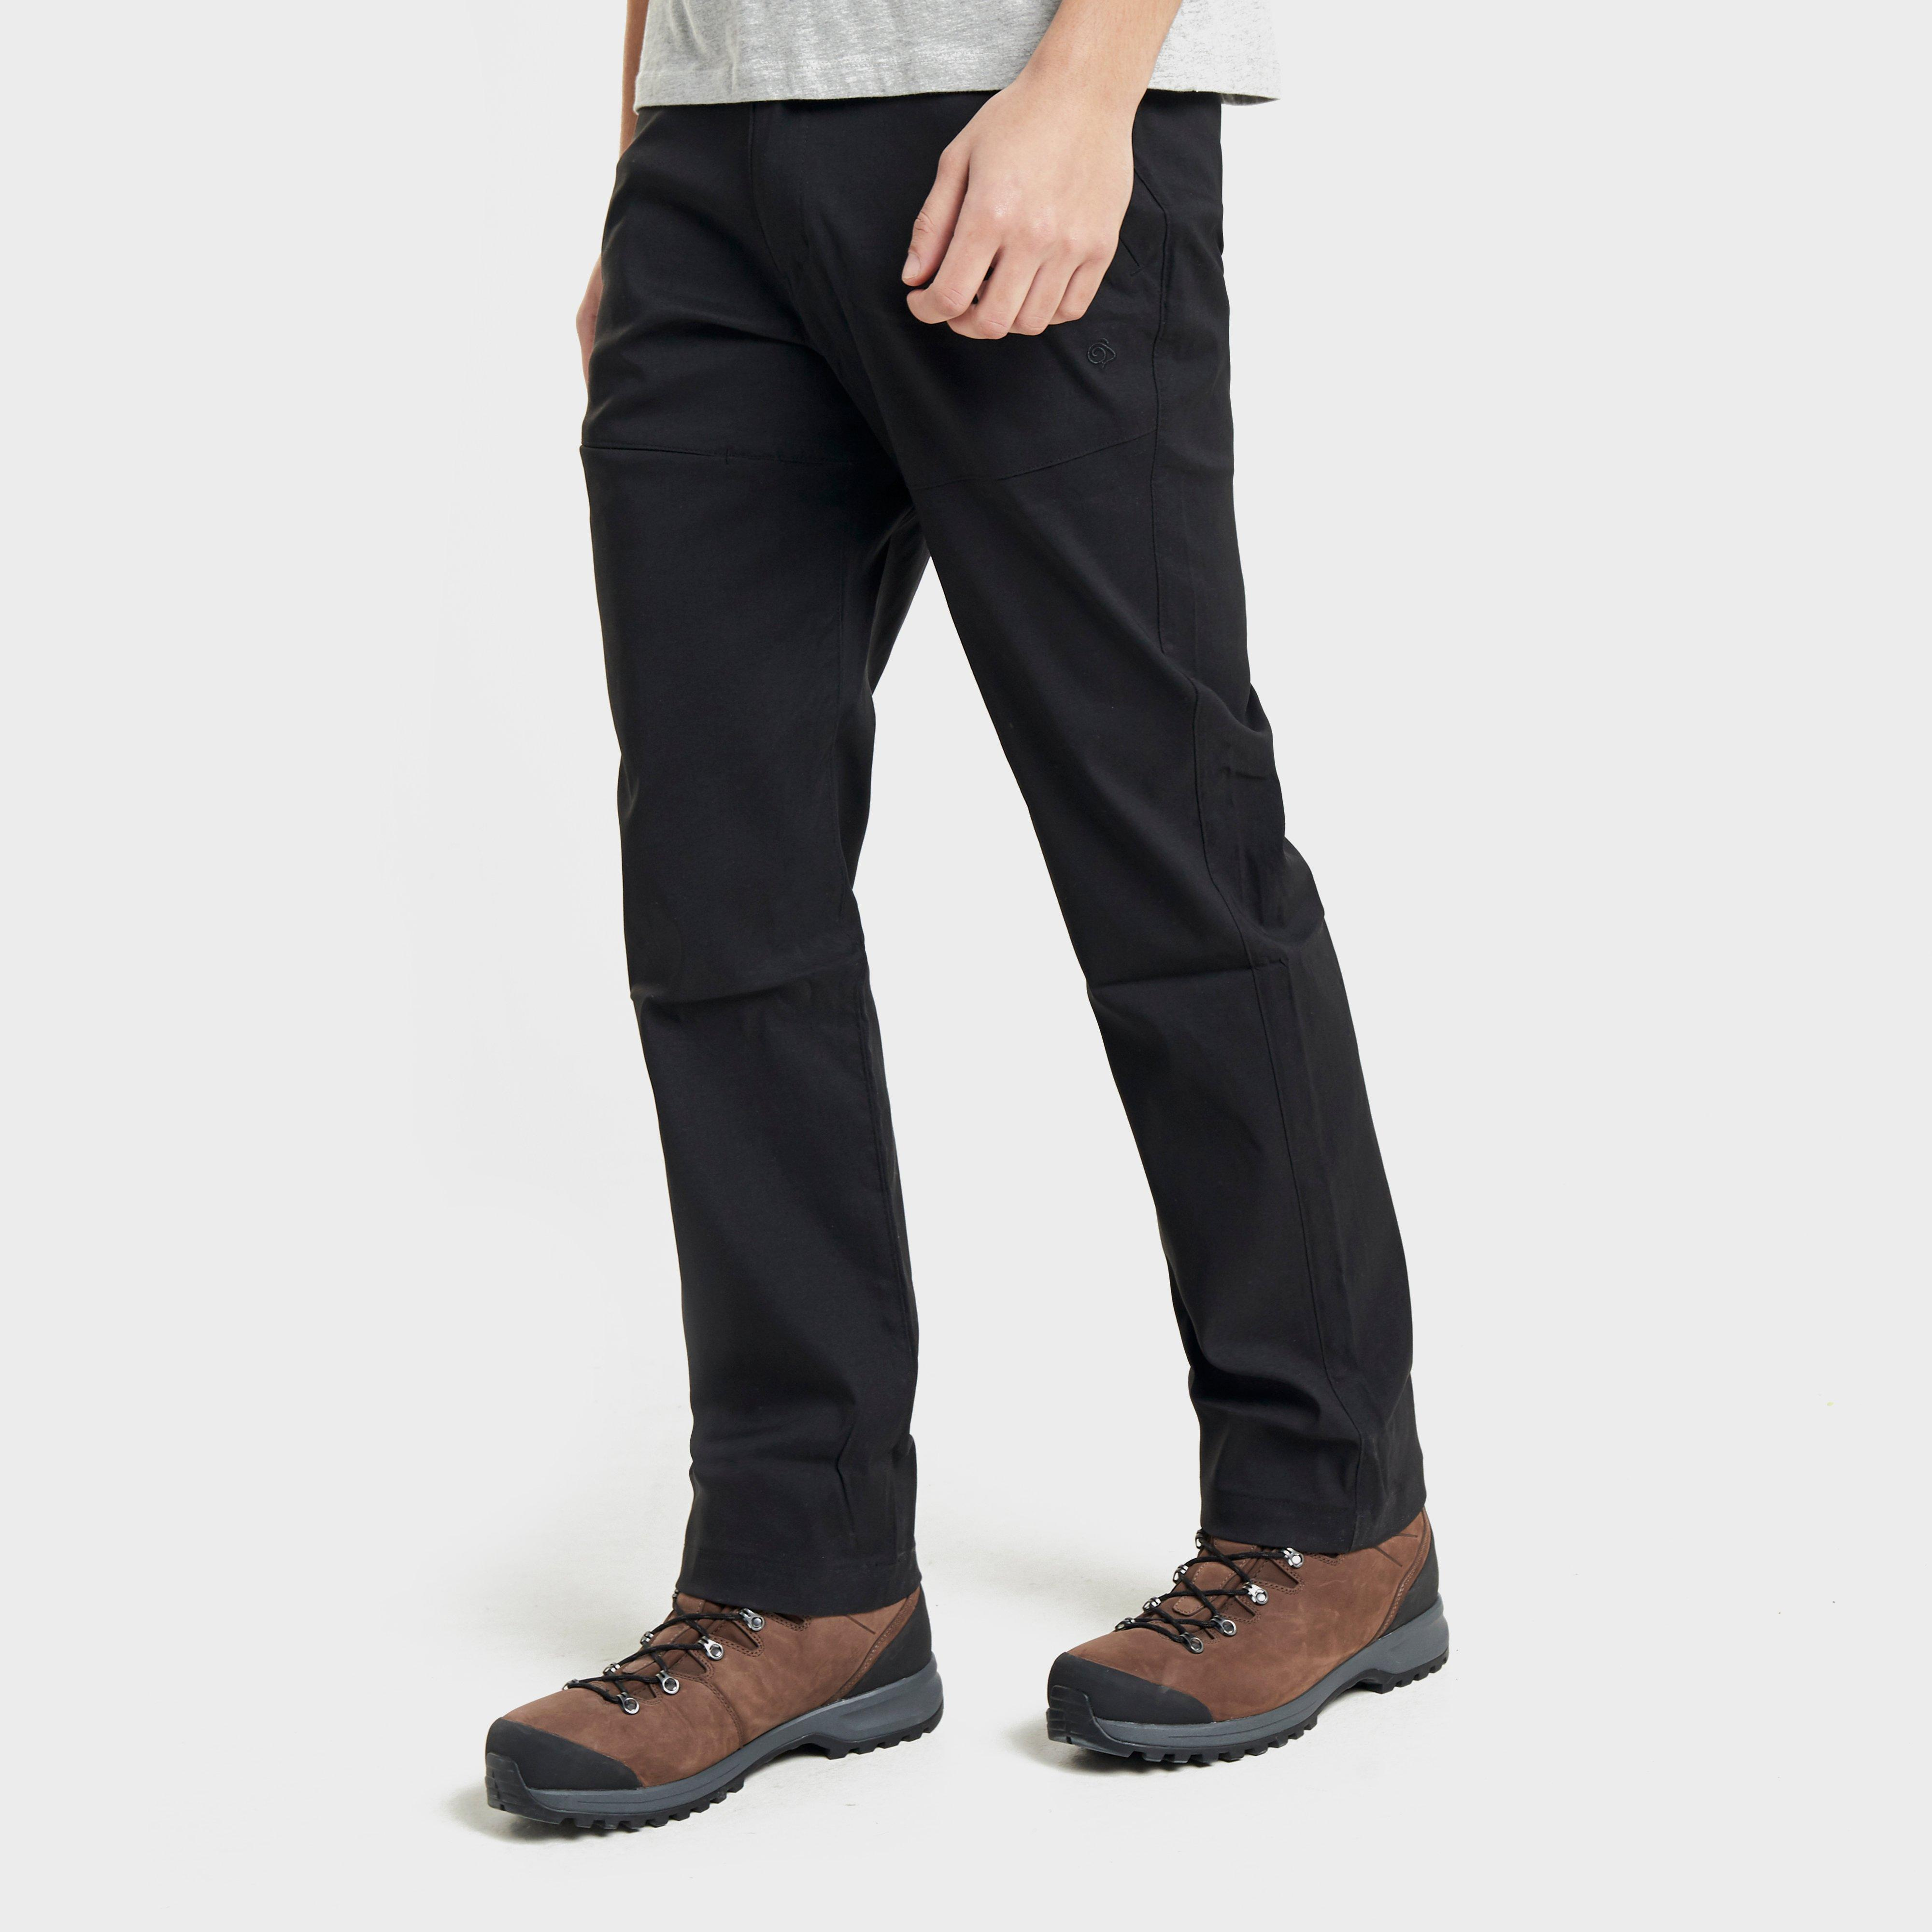 Craghoppers Craghoppers Mens Kiwi Pro Stretch Active Trousers